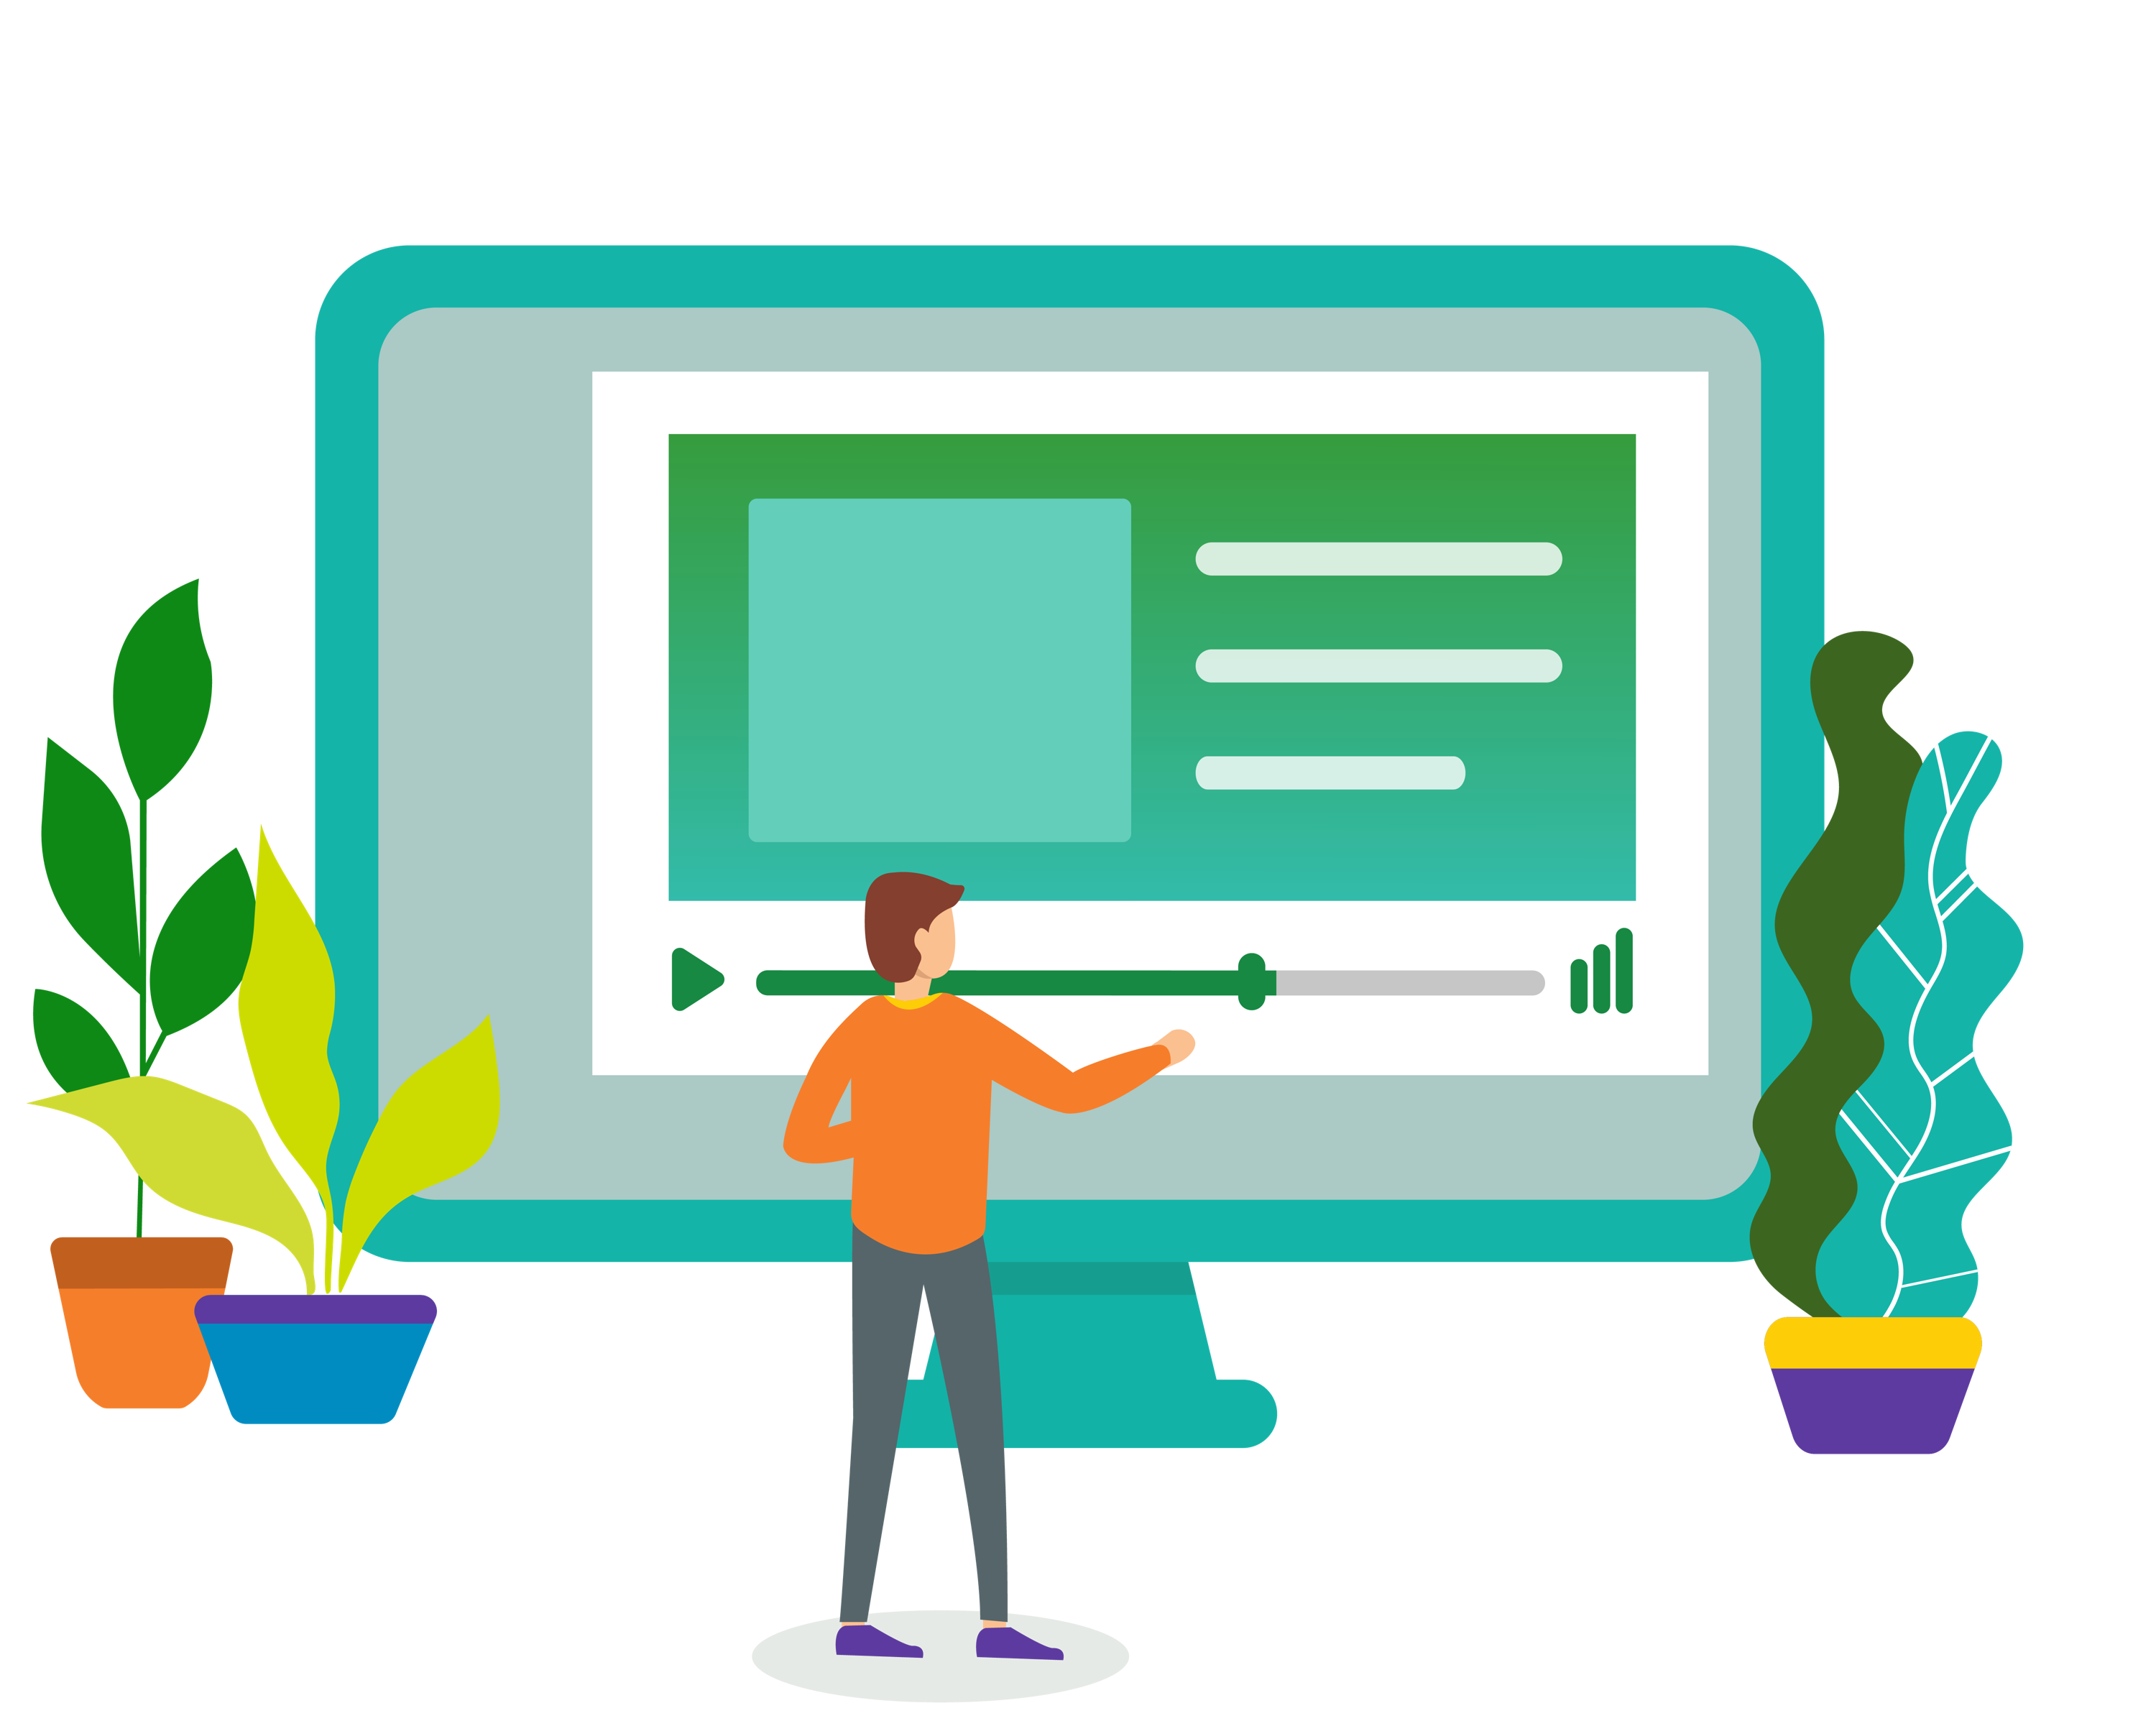 Illustration of person with abstract course interface